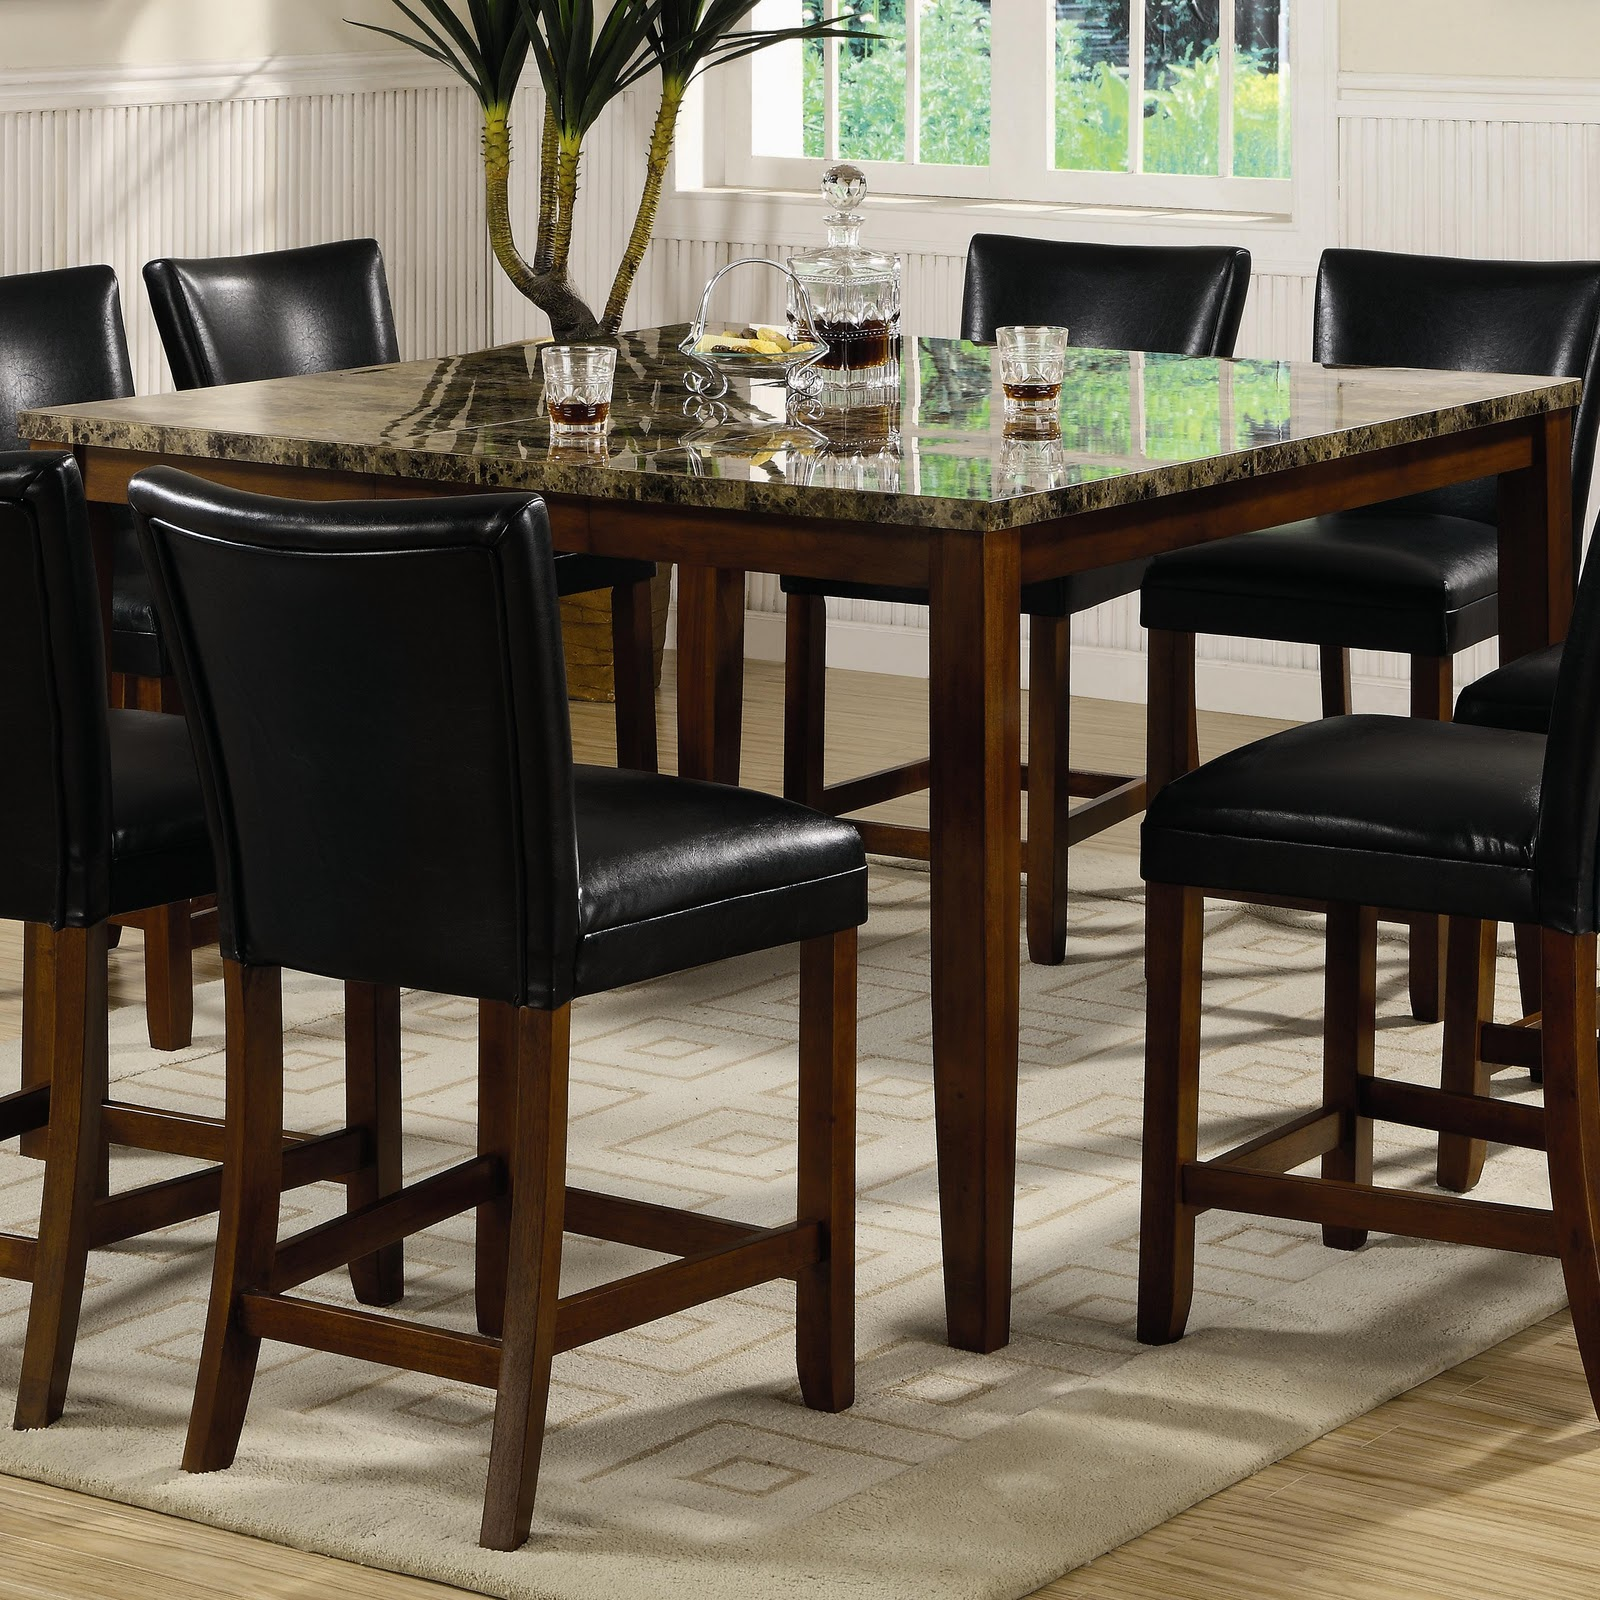 BEST HOME DECORATORS Pub Bar Height Tables Dining Room Furniture